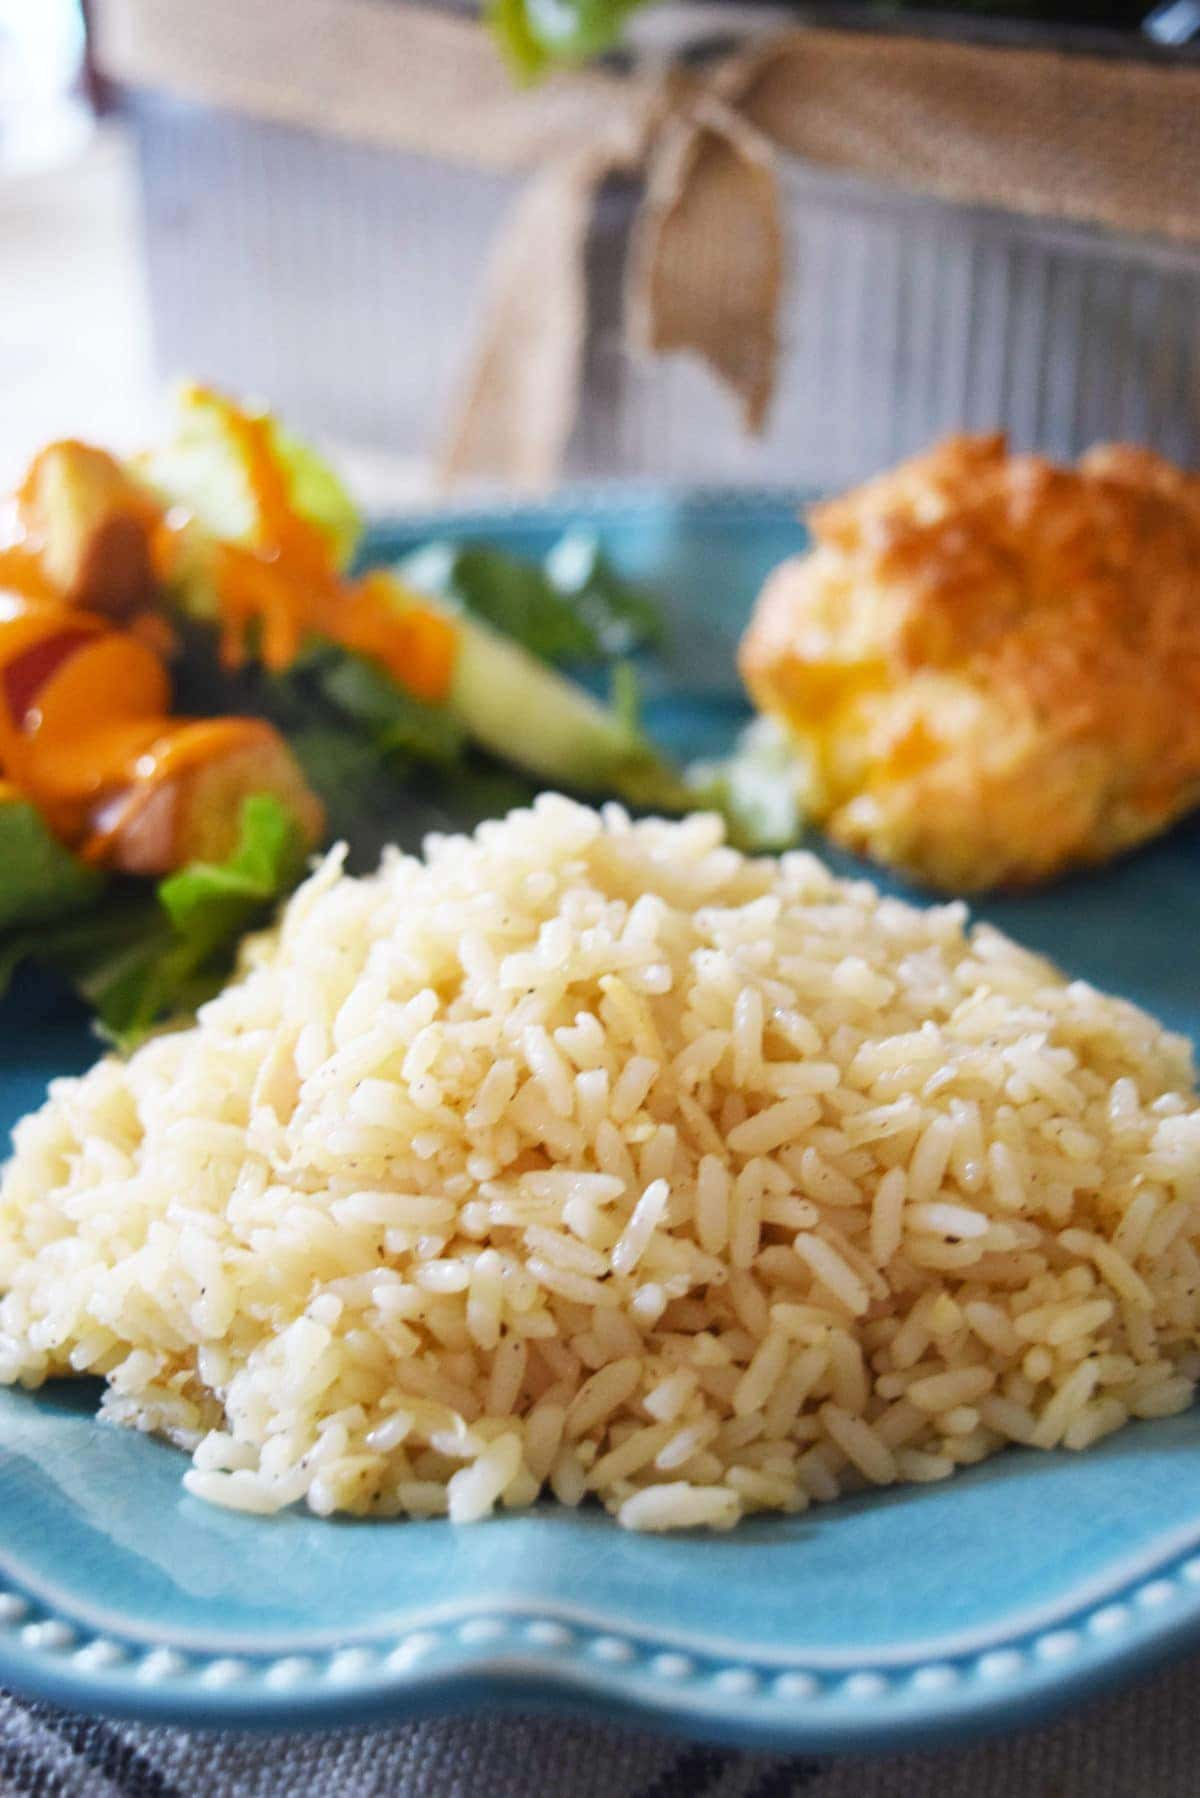 Boil Out Of The Bag Chicken And Rice Soulfully Made